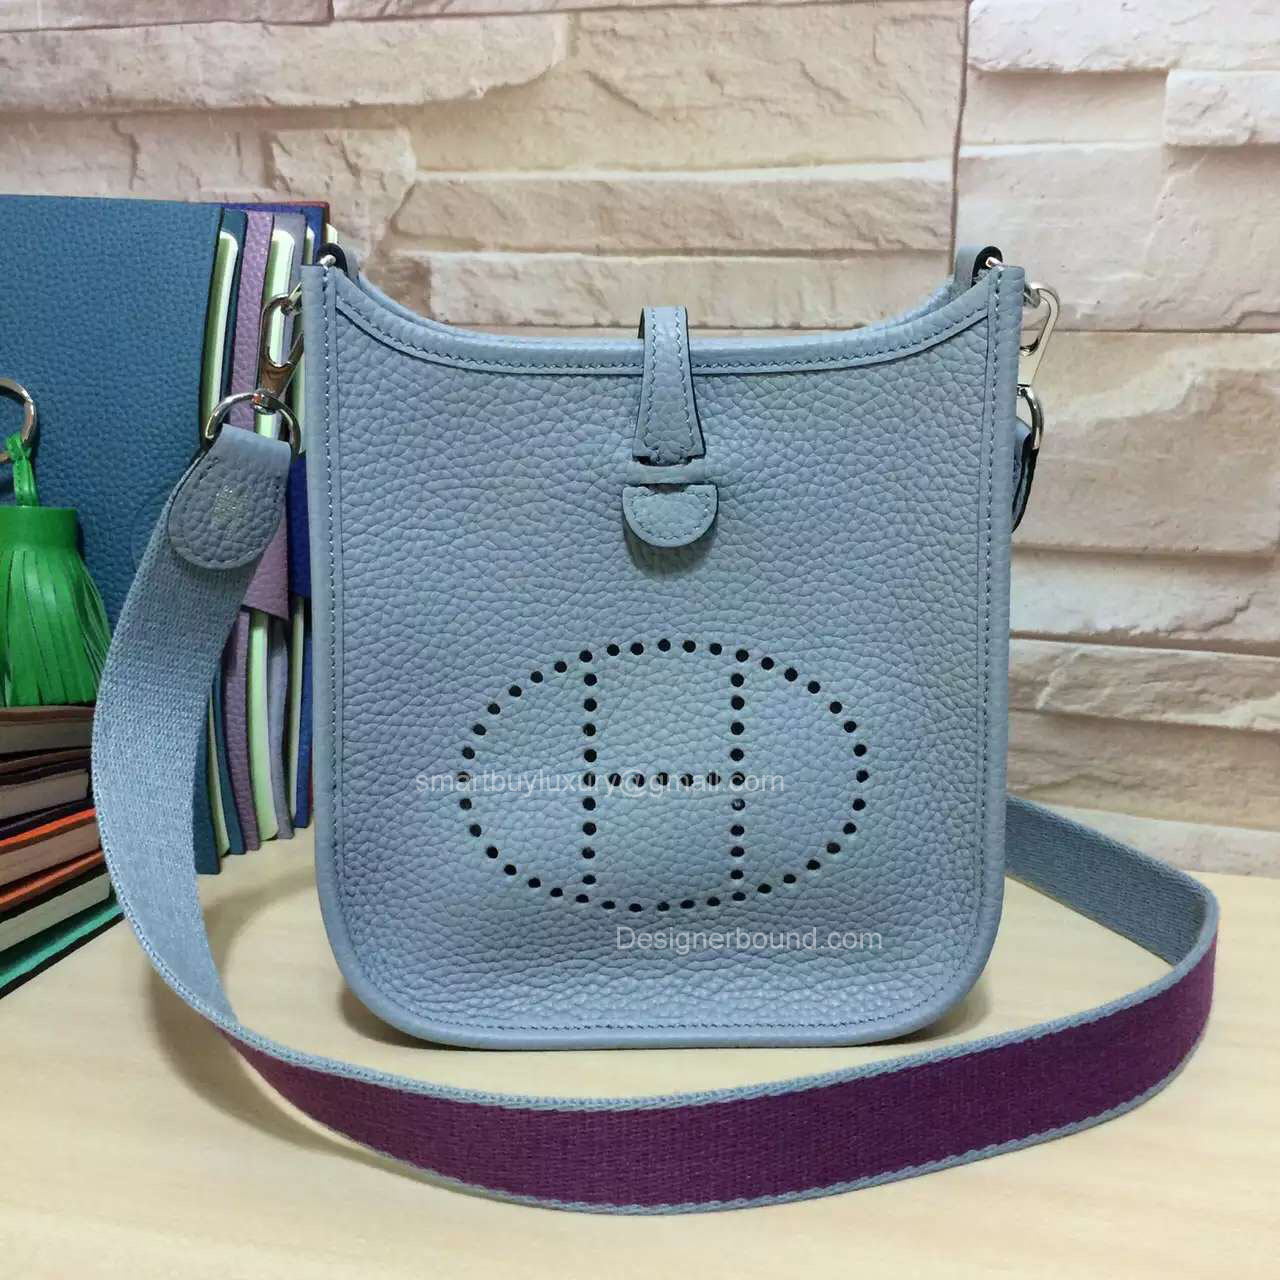 Hermes Evelyne III Bag in Ice Blue Togo Leather TPM